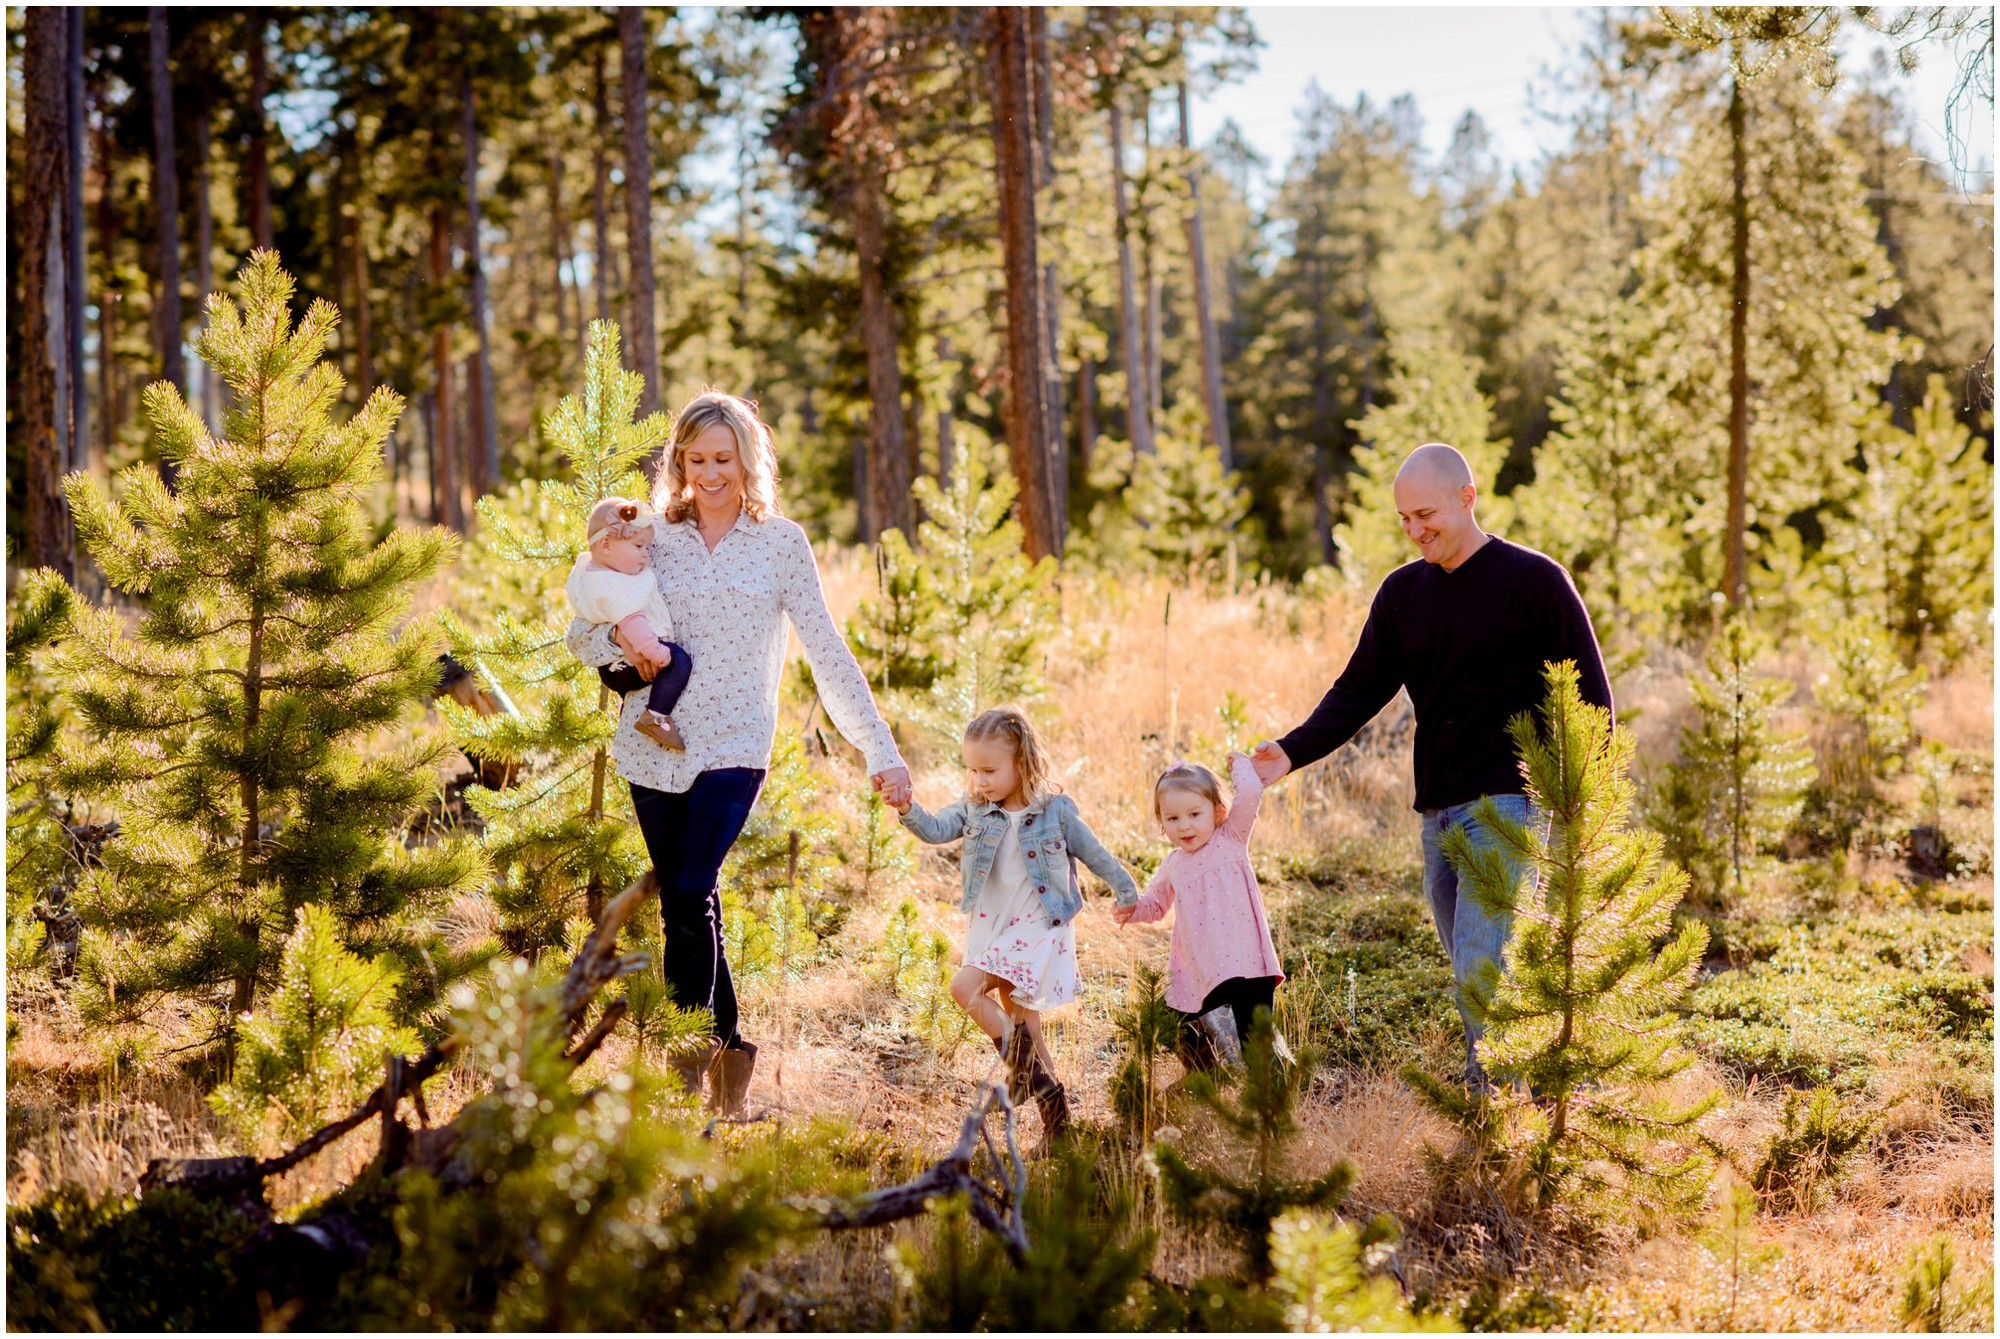 89-Evergreen-outdoor-family-photography.jpg